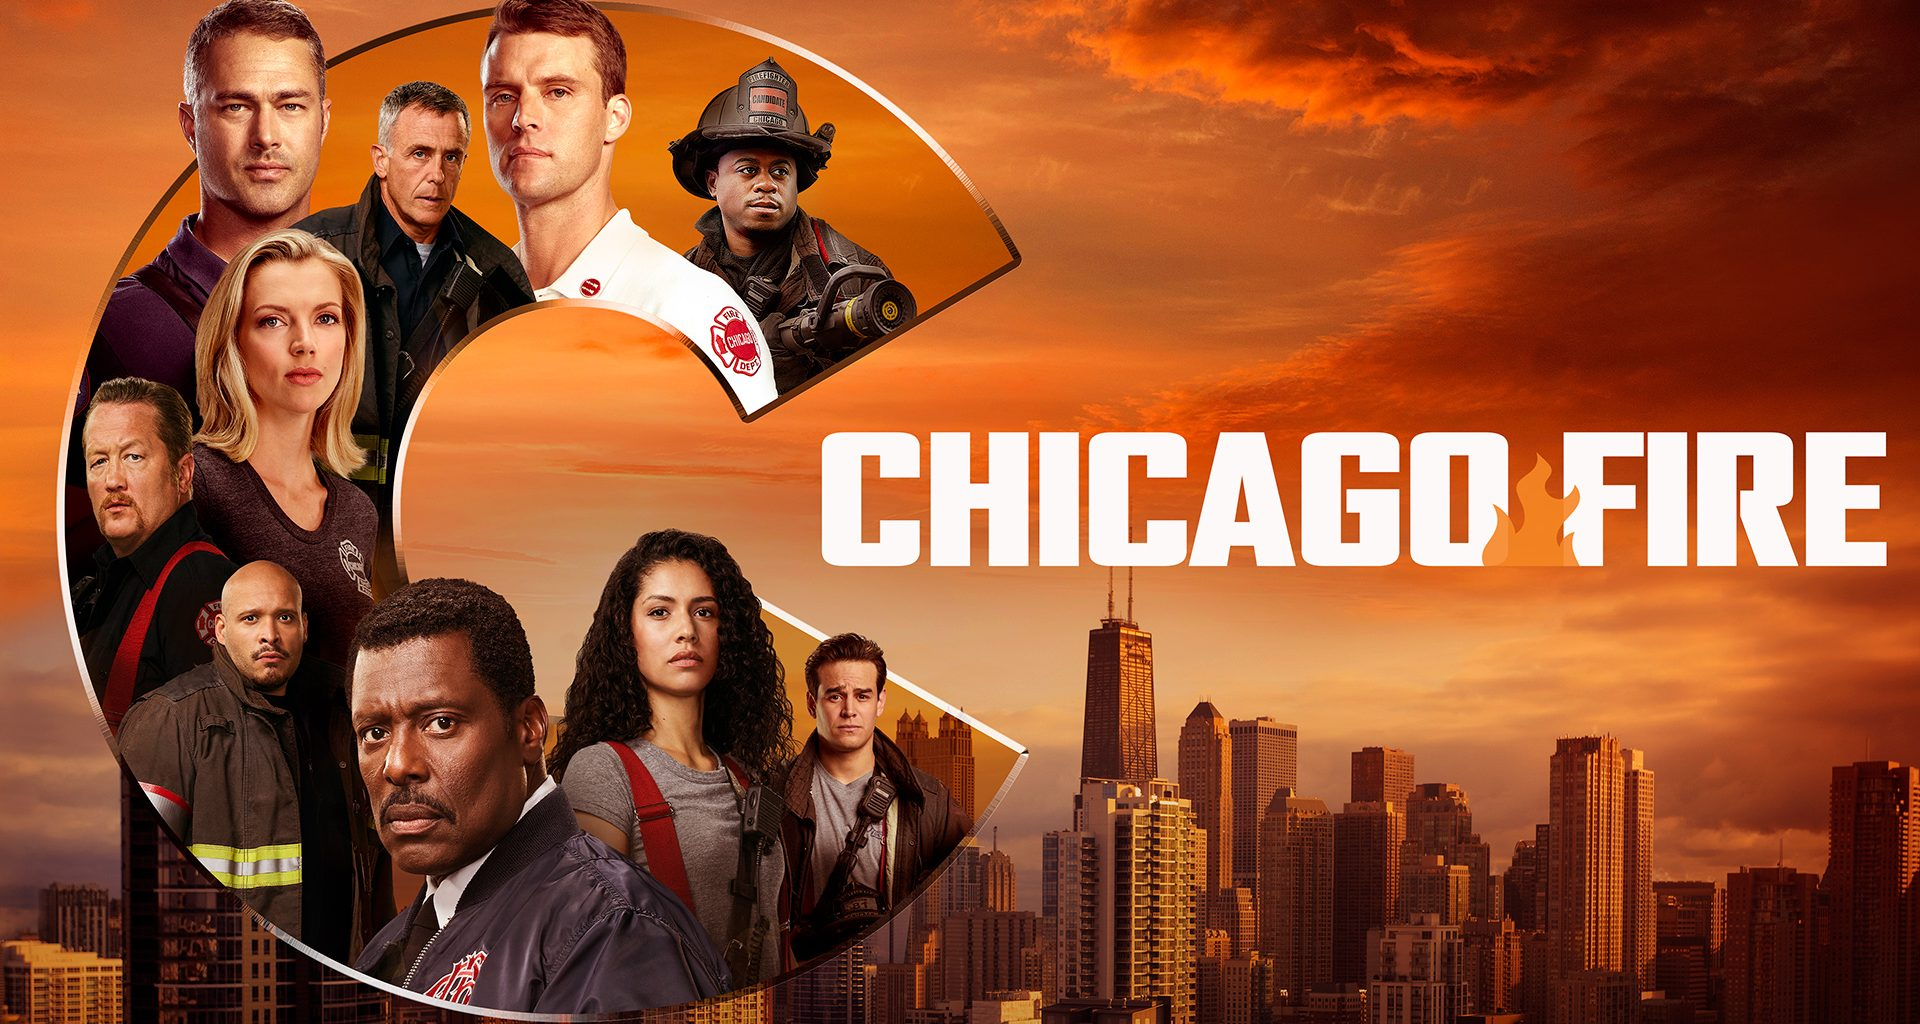 Chicago Fire Season 10 Episode 2 Release Date In Usa Uk India L Platforms To Watch Sam Drew Takes On